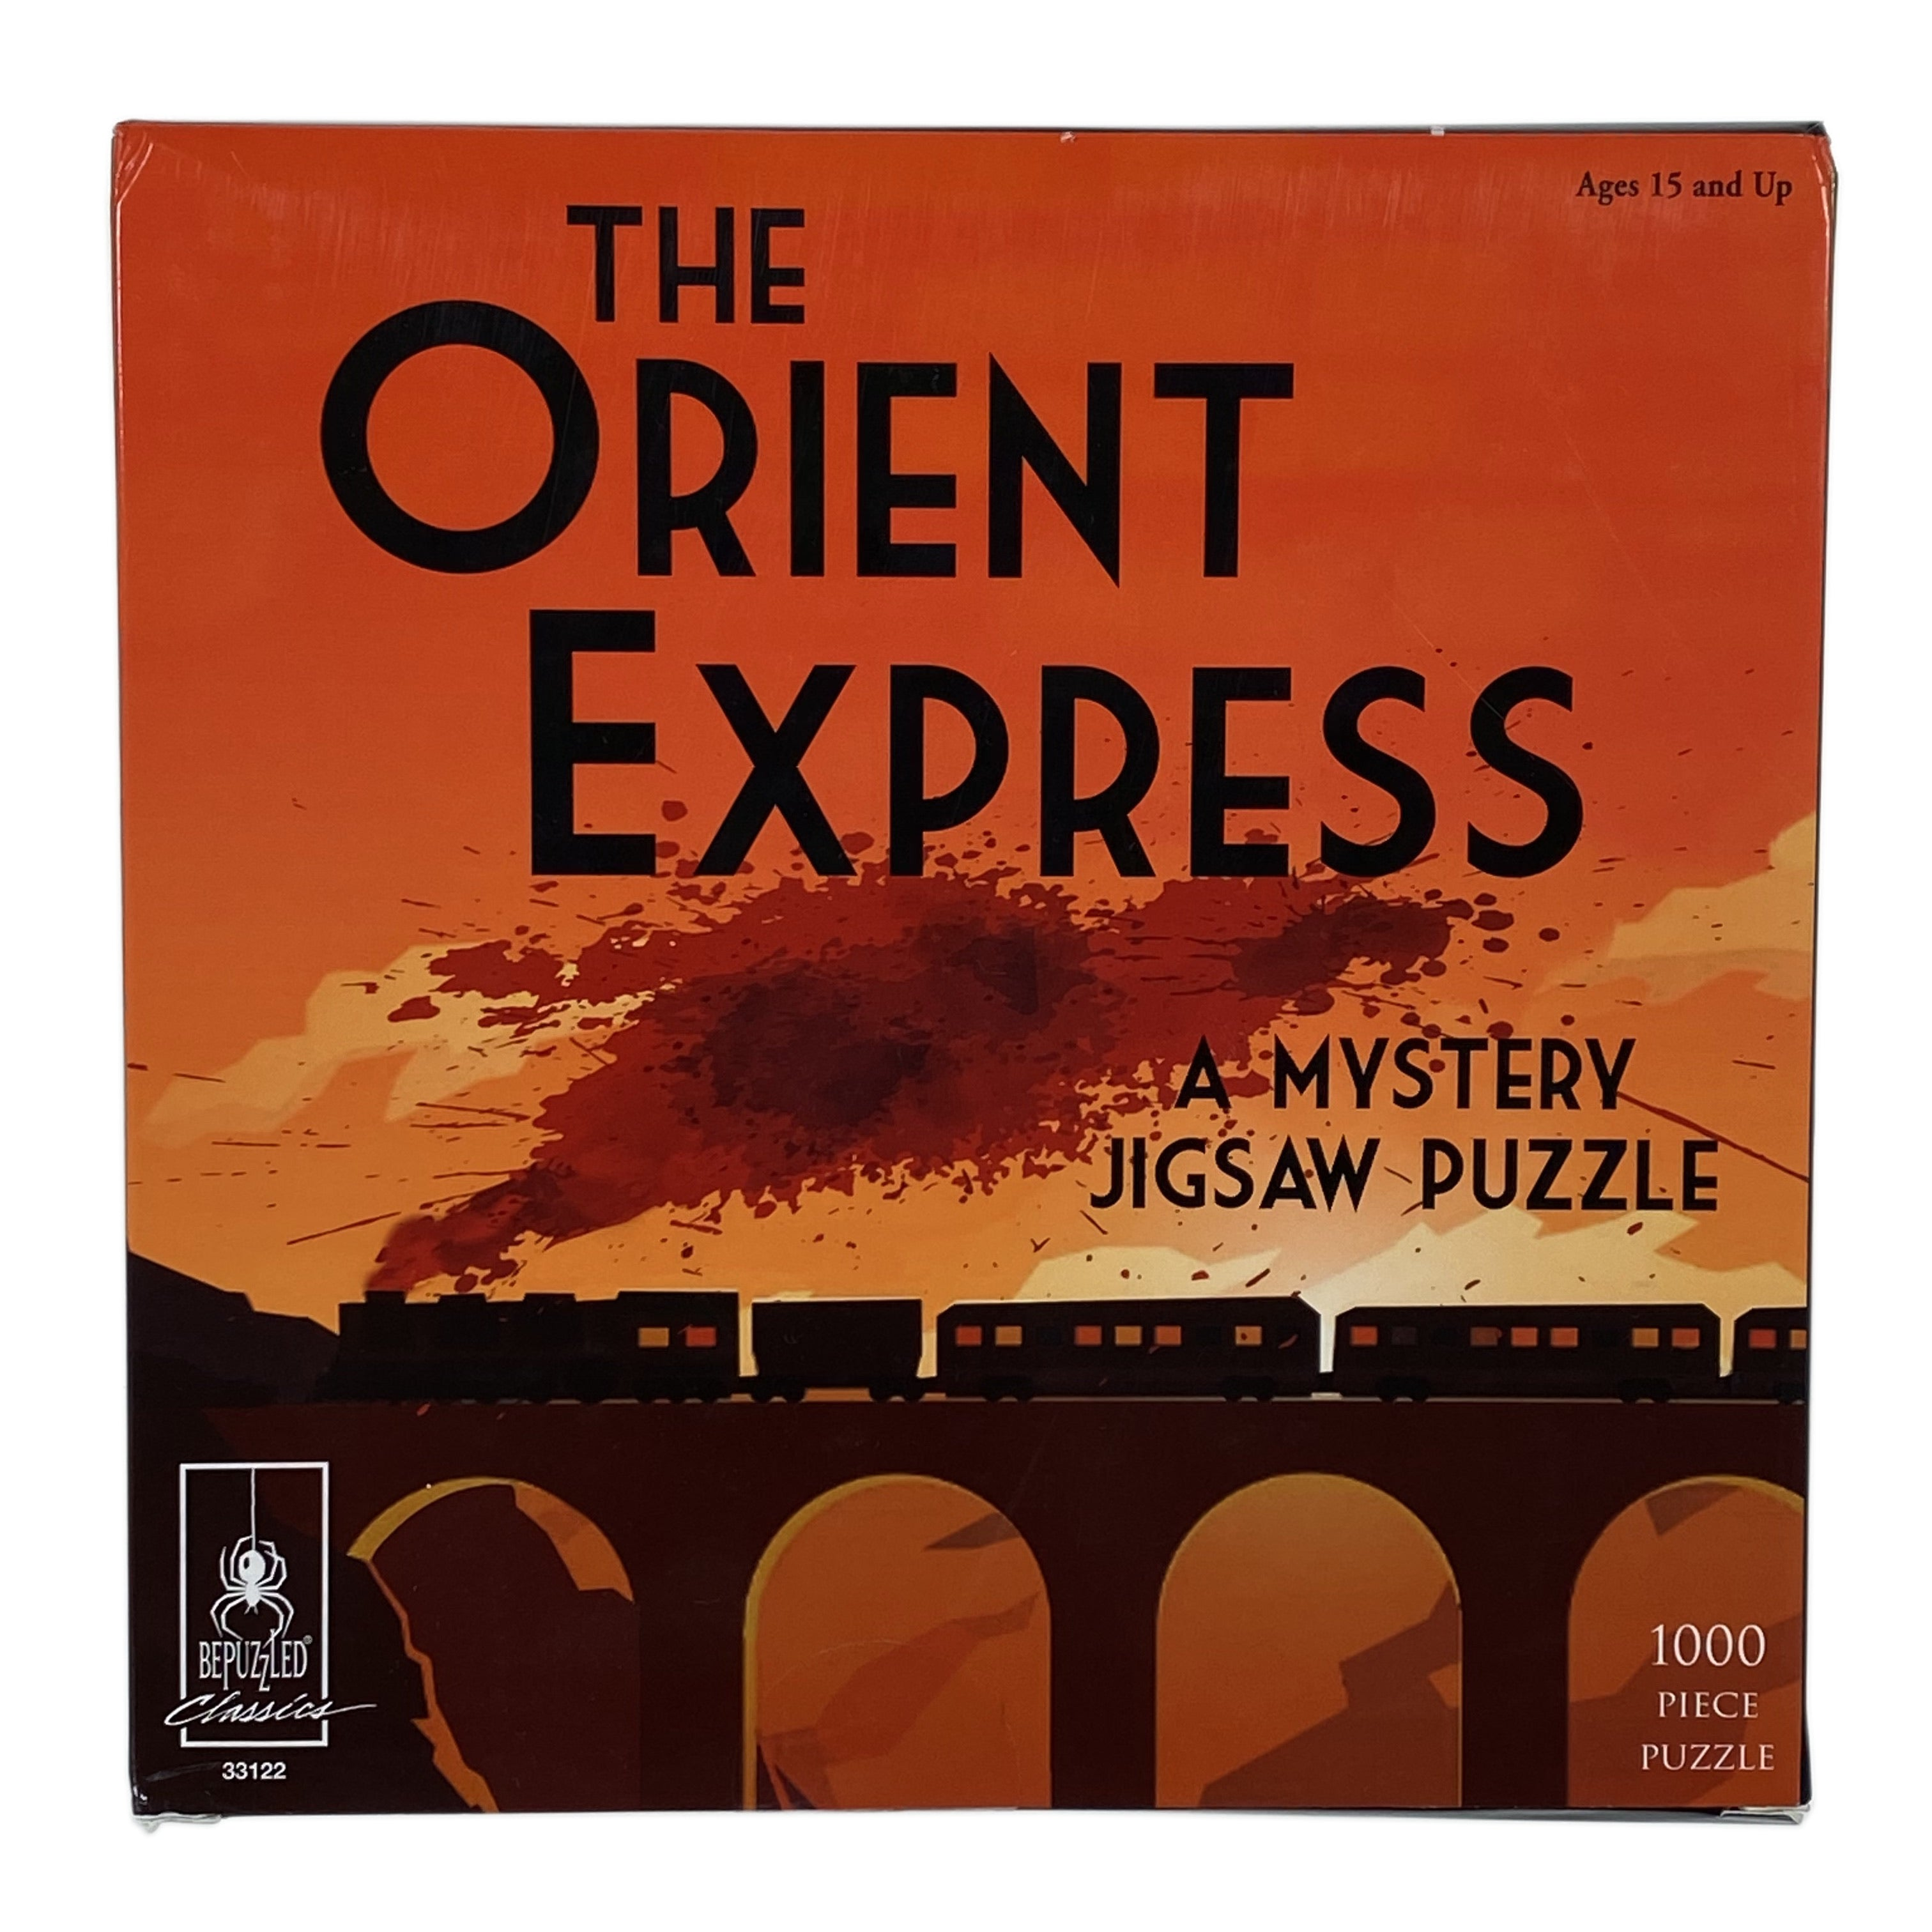 The Orient Express 1000 Piece Mystery Puzzle